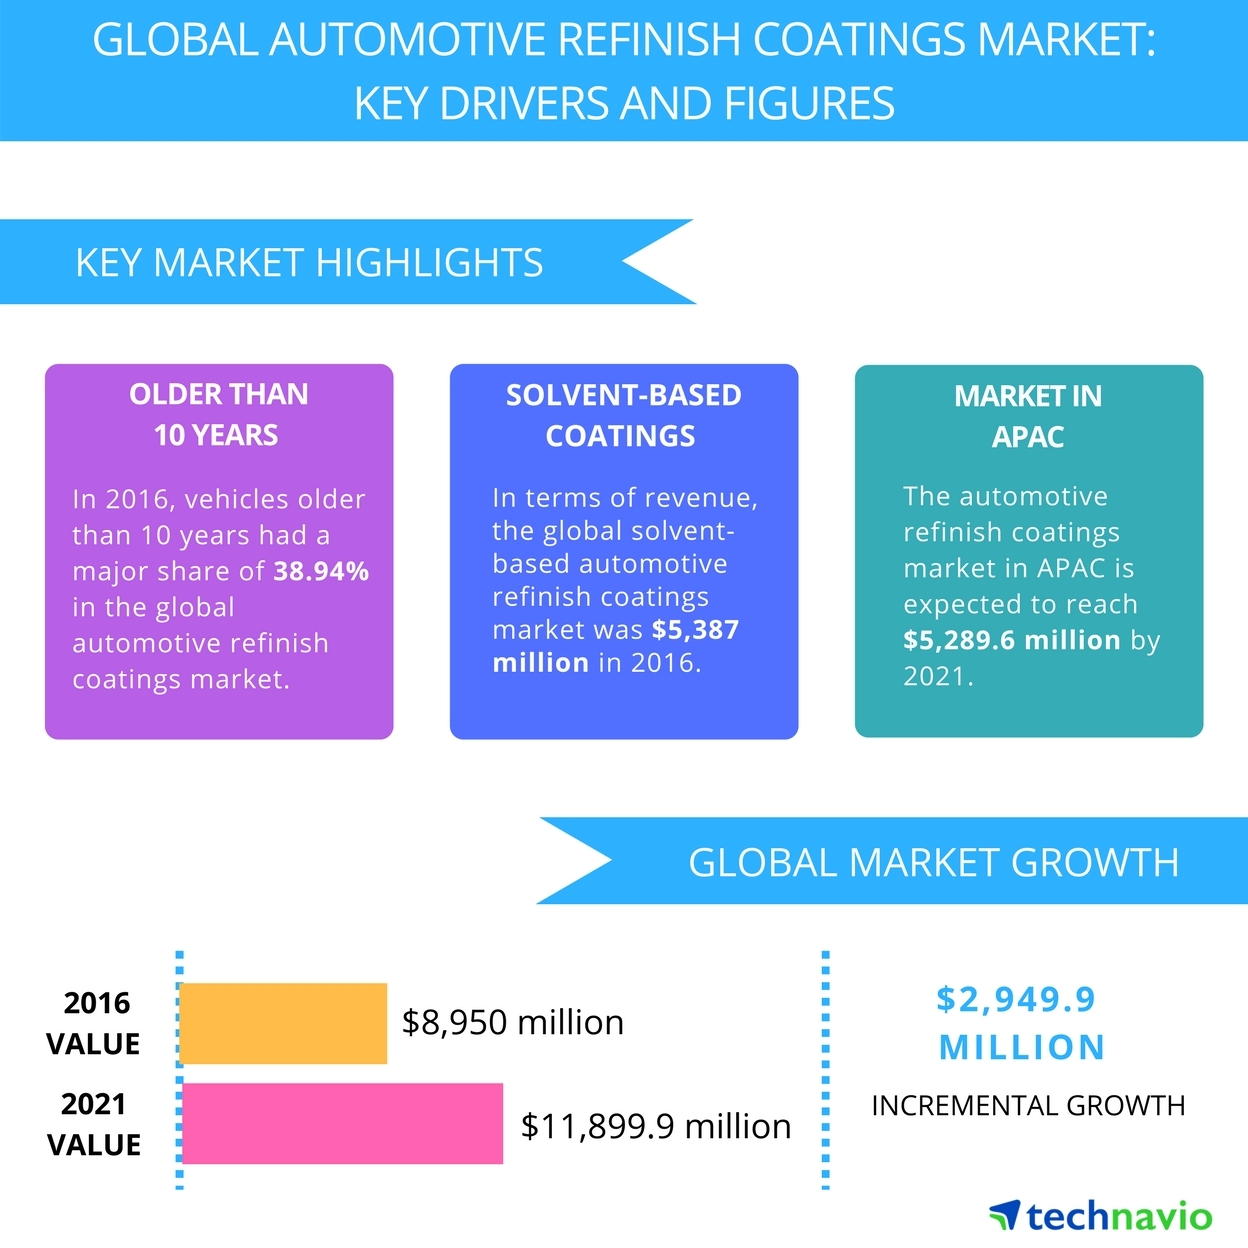 Top 5 Vendors in the Automotive Refinish Coatings Market from 2017